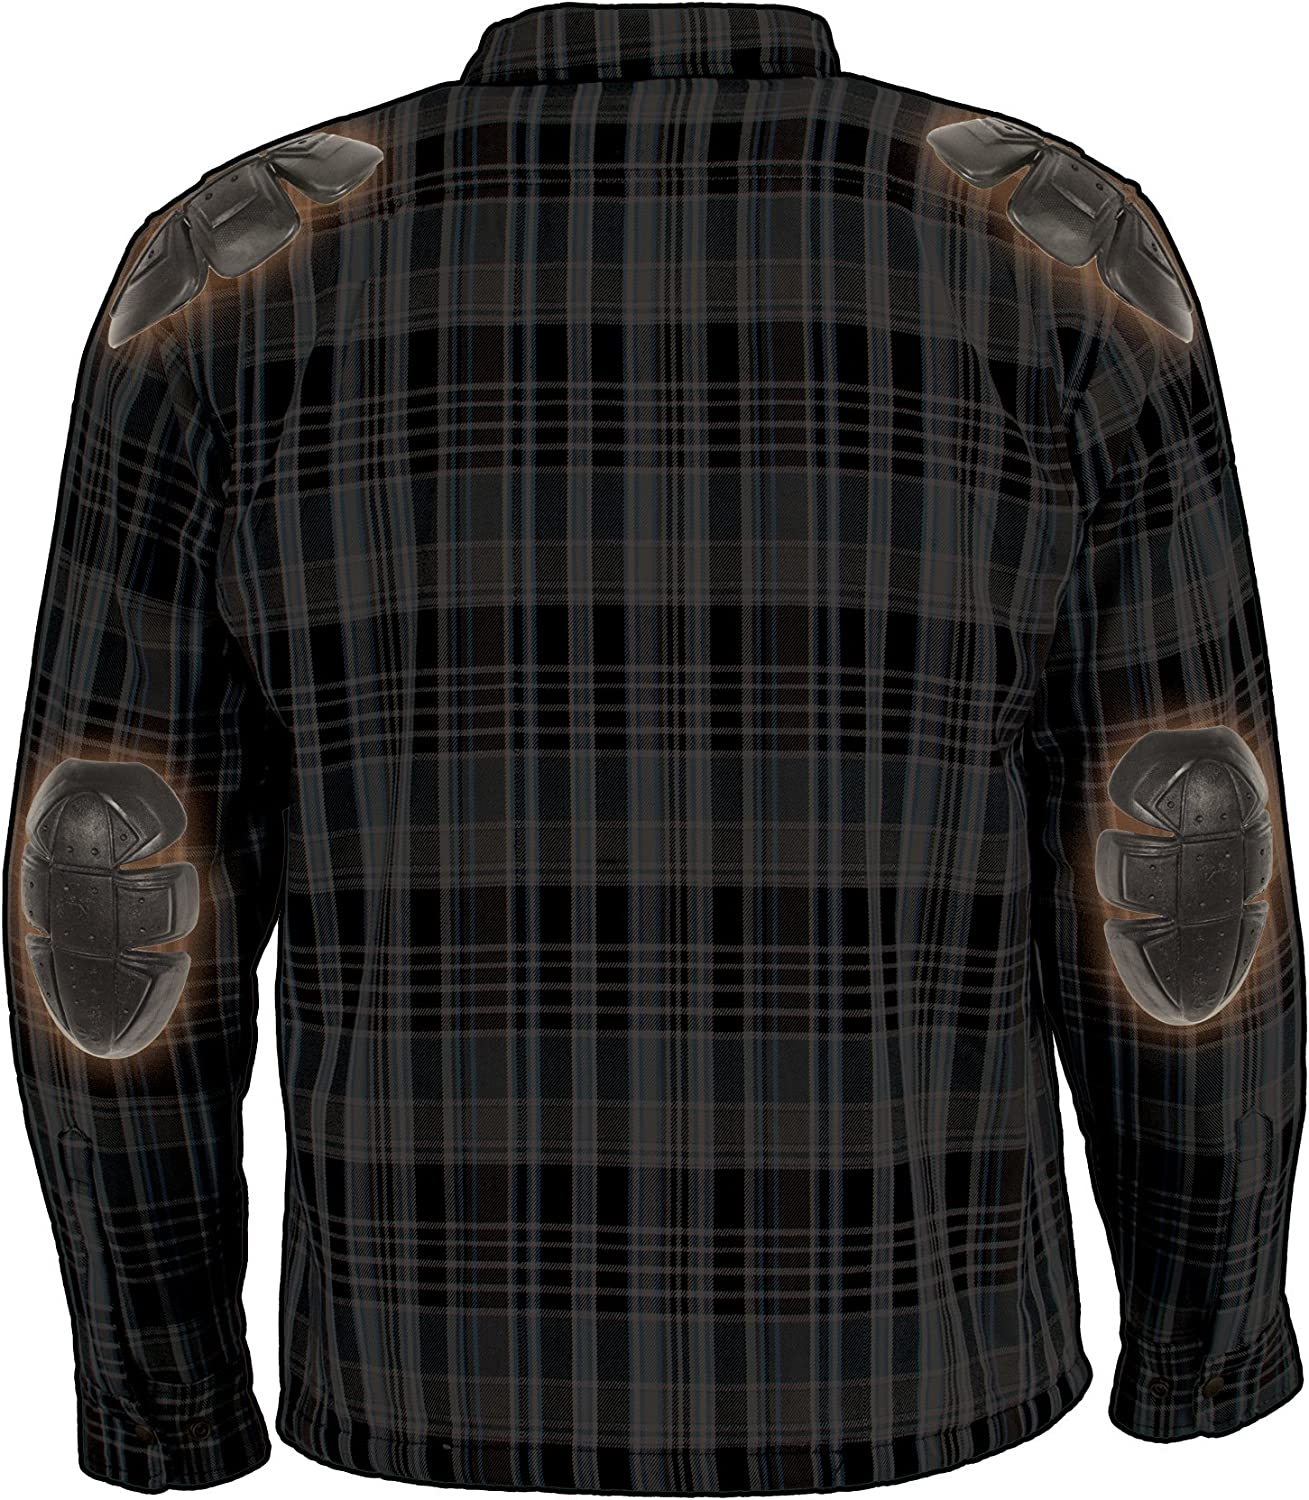 Milwaukee Performance MPM1636 Mens Armored Flannel Biker Jacket with Aramid by DuPont Fibers Small